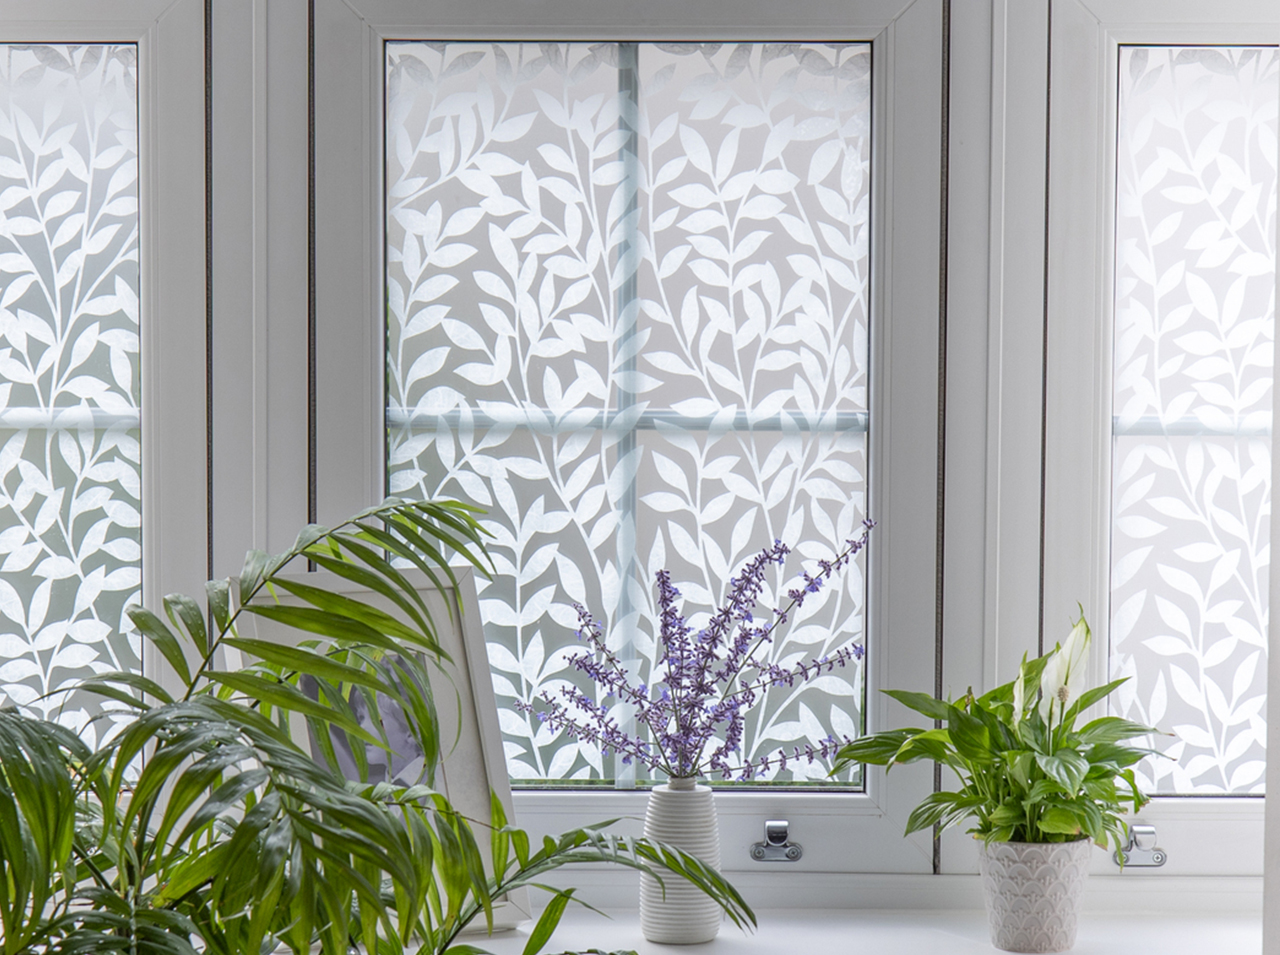 Window surfaces covered with d-c-fix® privacy film Jane for greater privacy.